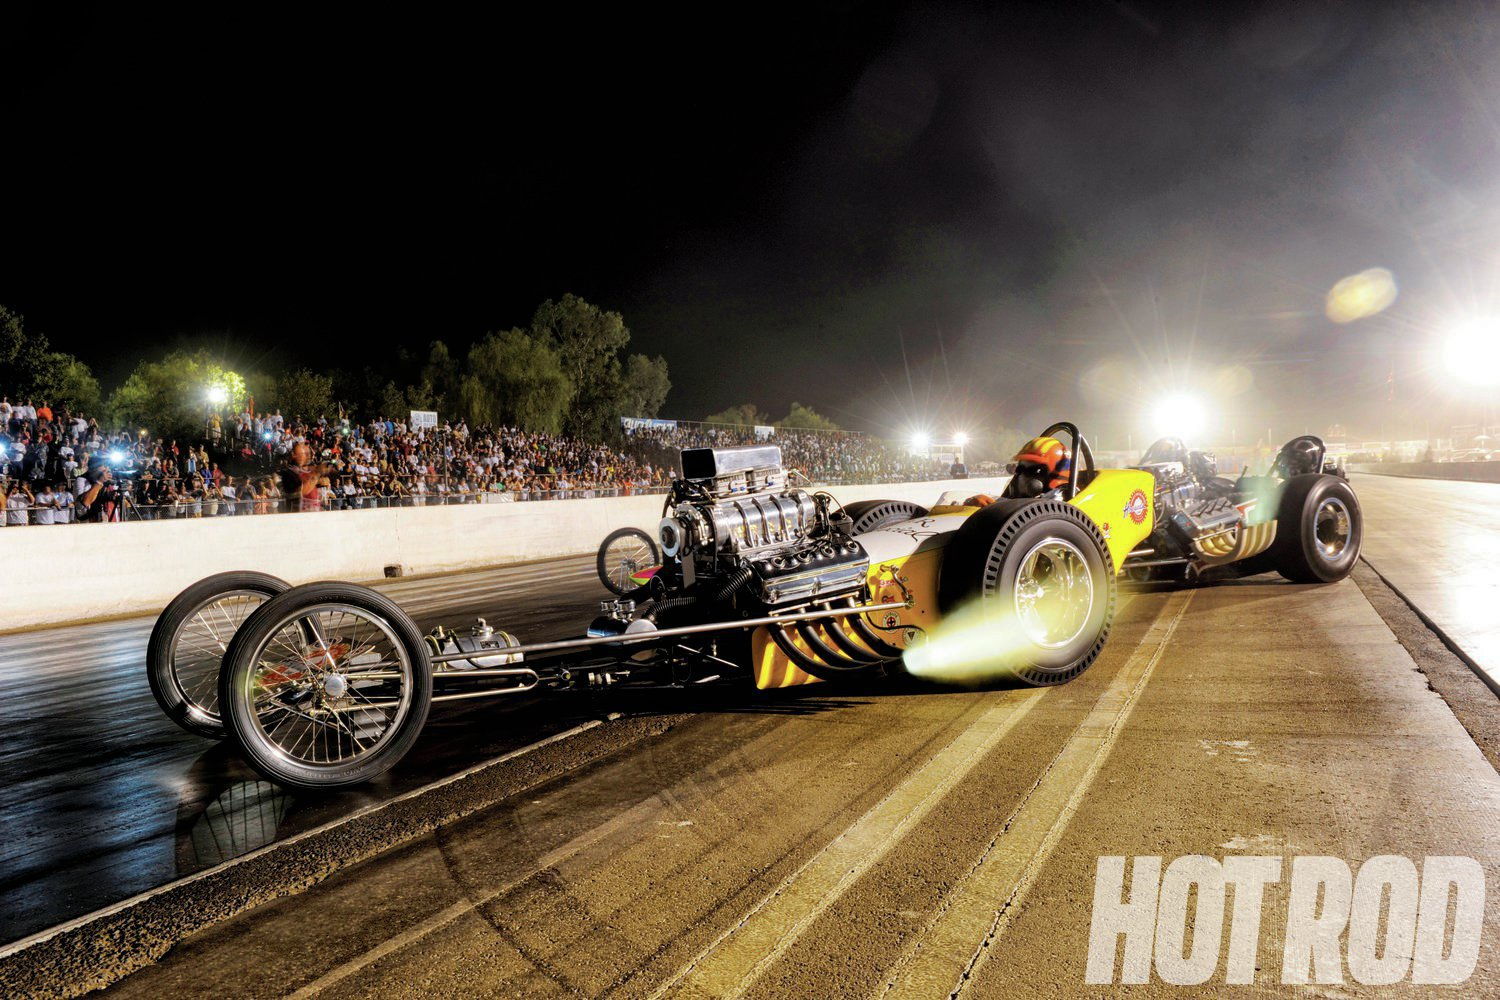 As the sun went down, the Cacklefest dragsters lit up the night.